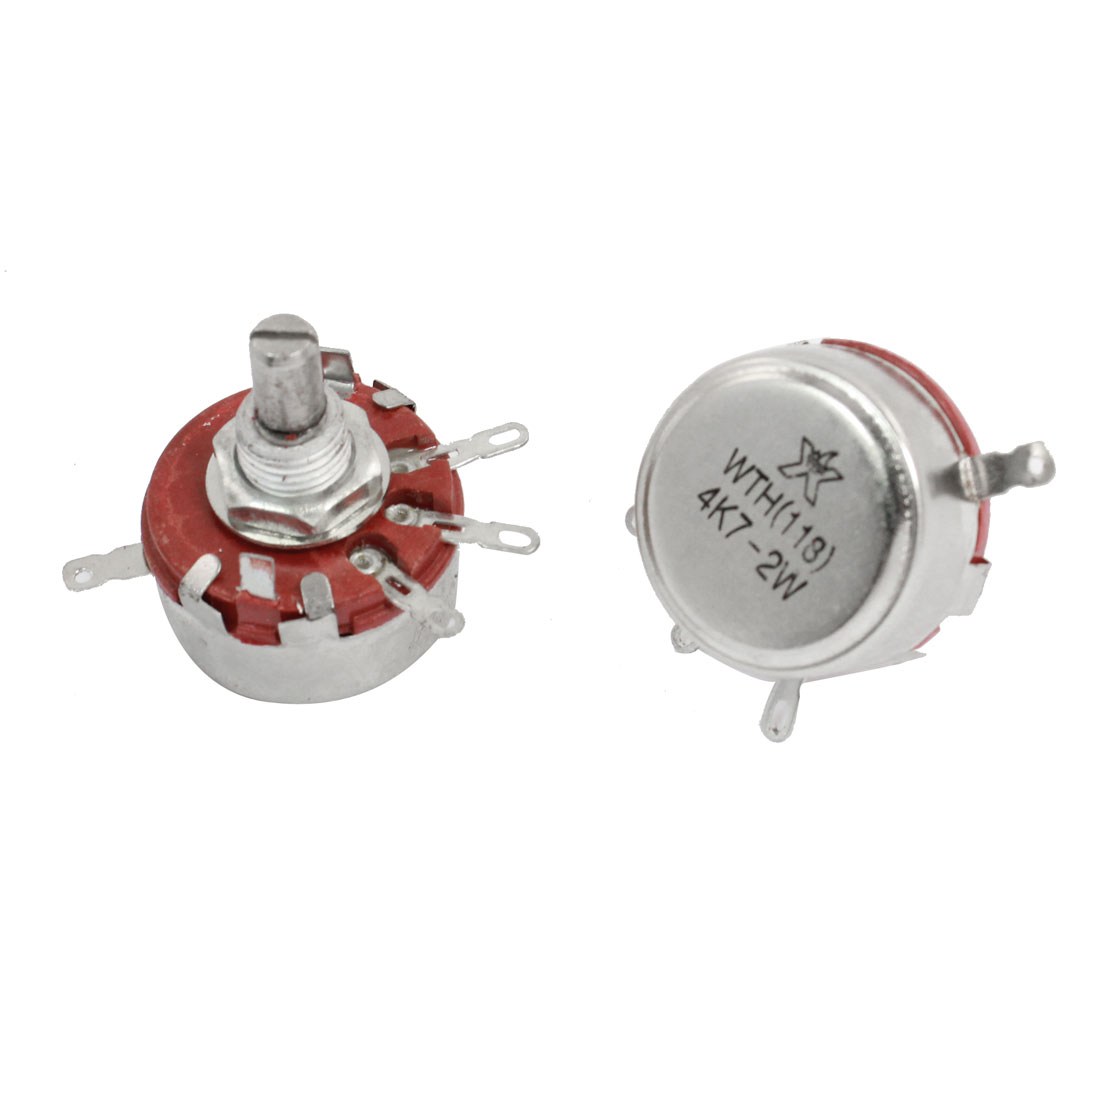 2pcs 4.7K ohm 2W Single Turn Carbon Composition Rotary Potentiometer WTH118